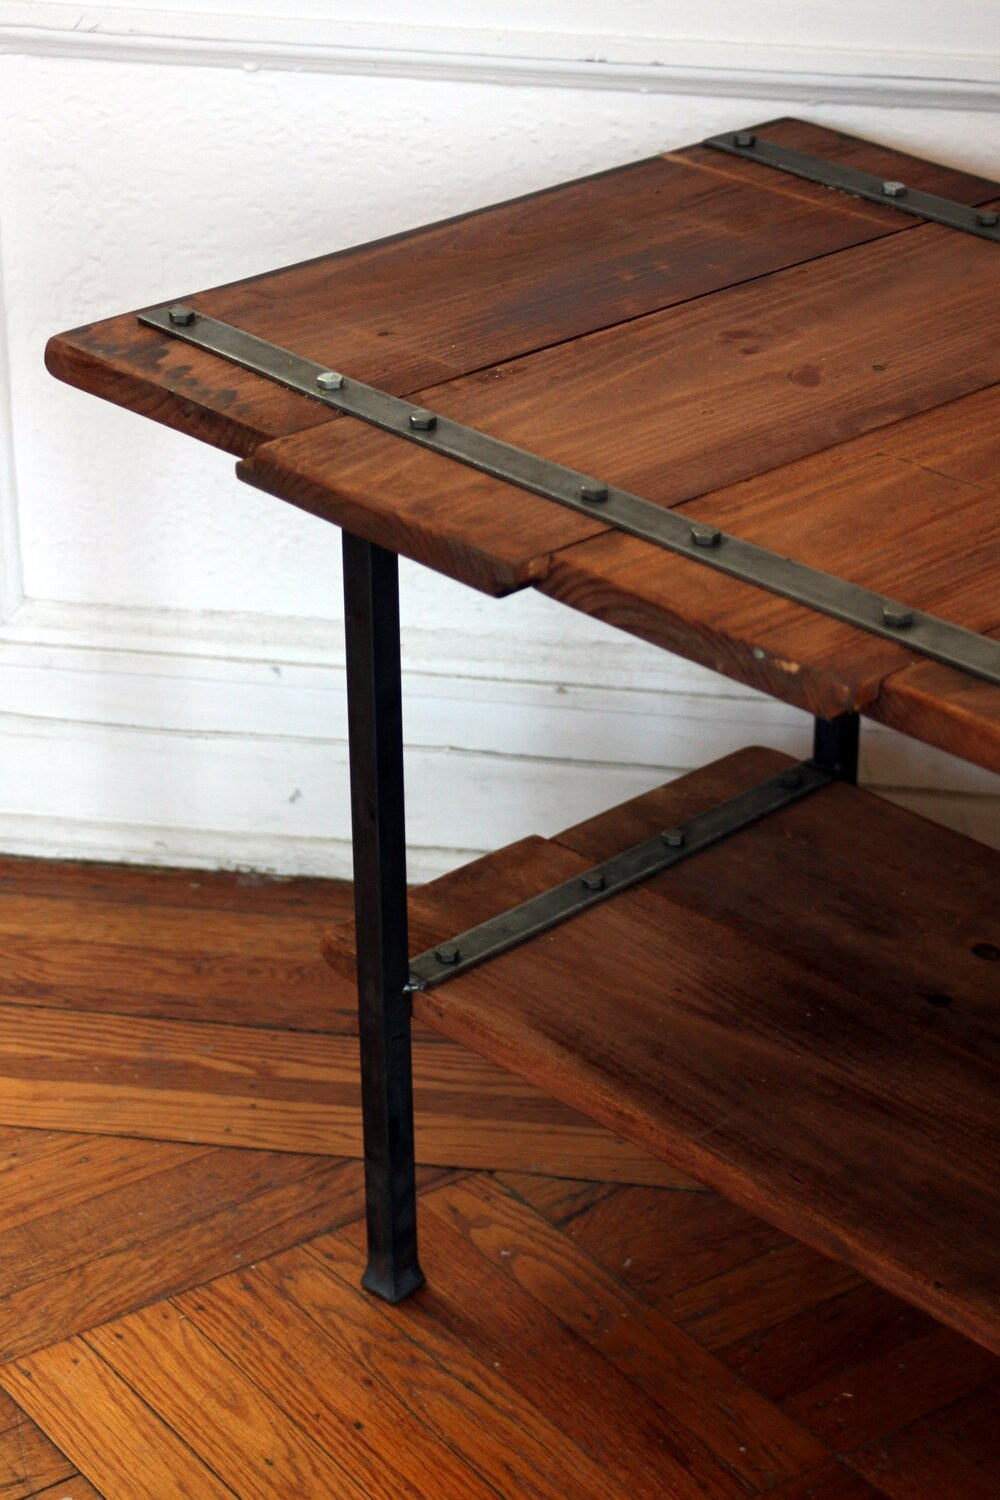 Salvaged shiplap pine and forged steel coffee table